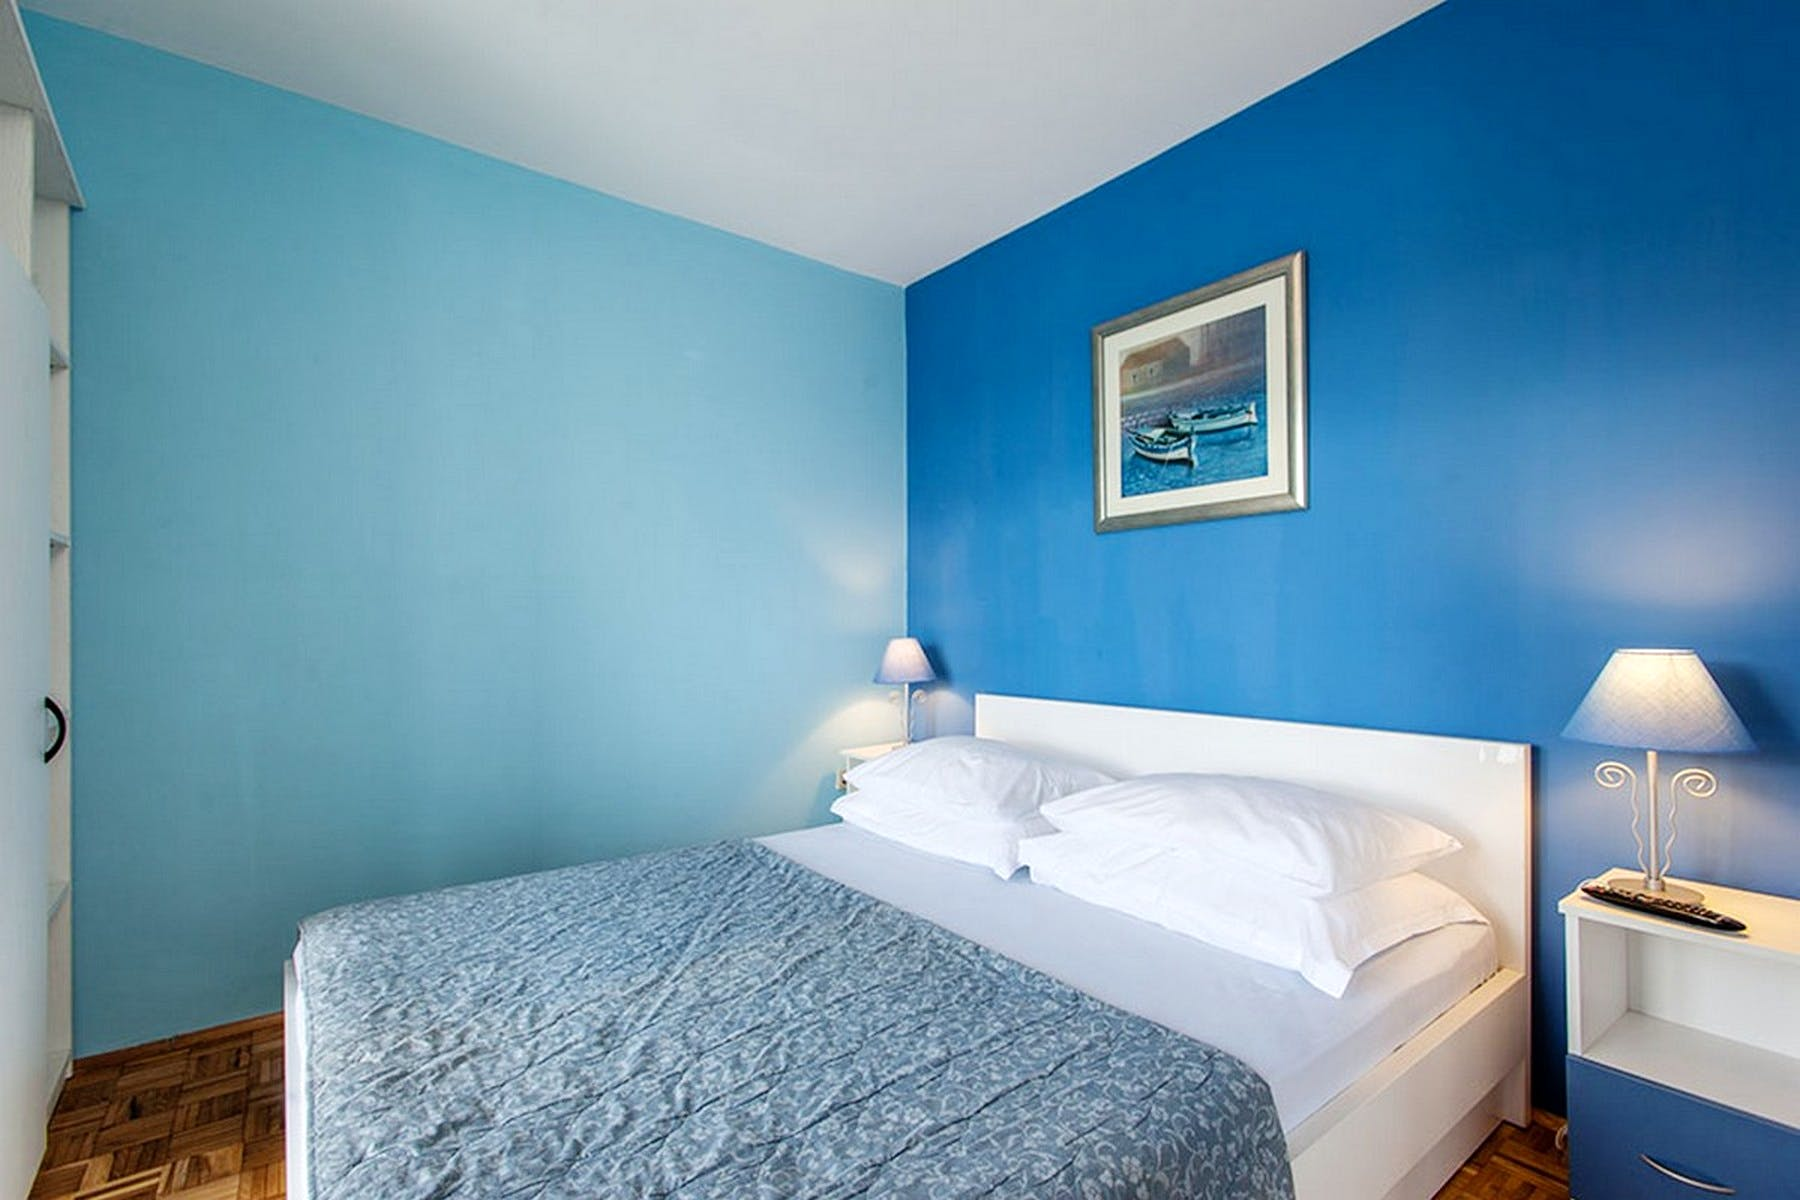 Different shades of blue in the double bedroom